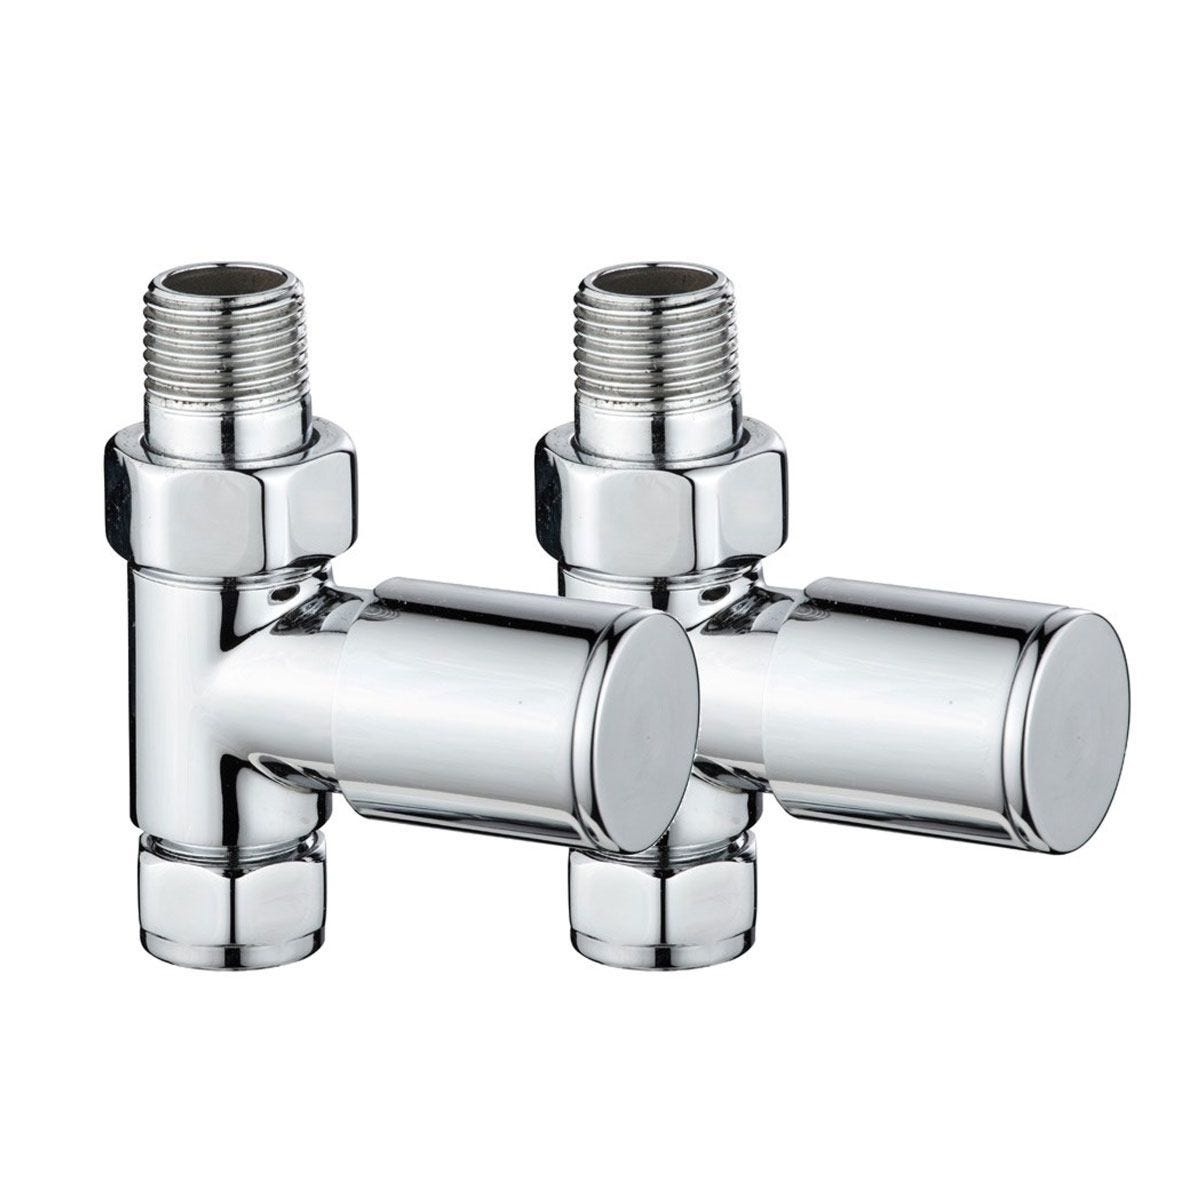 Heating Style Round Straight Radiator Valves - Chrome